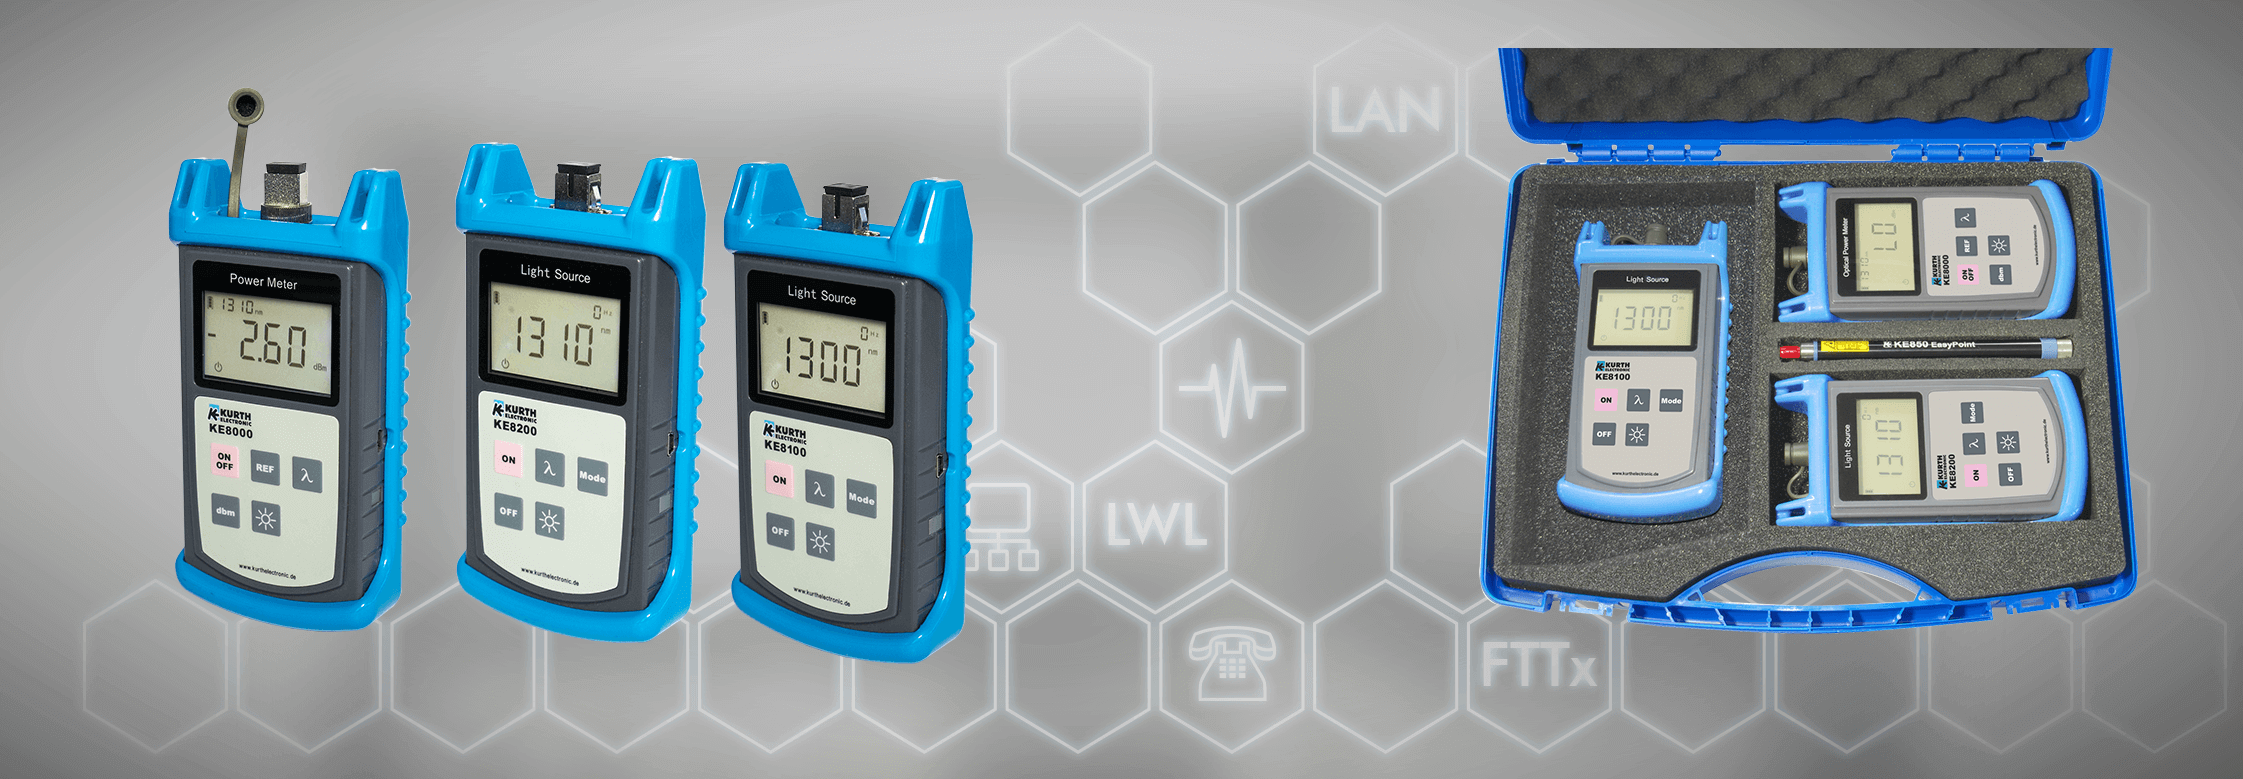 Optimal navigation in optical networks